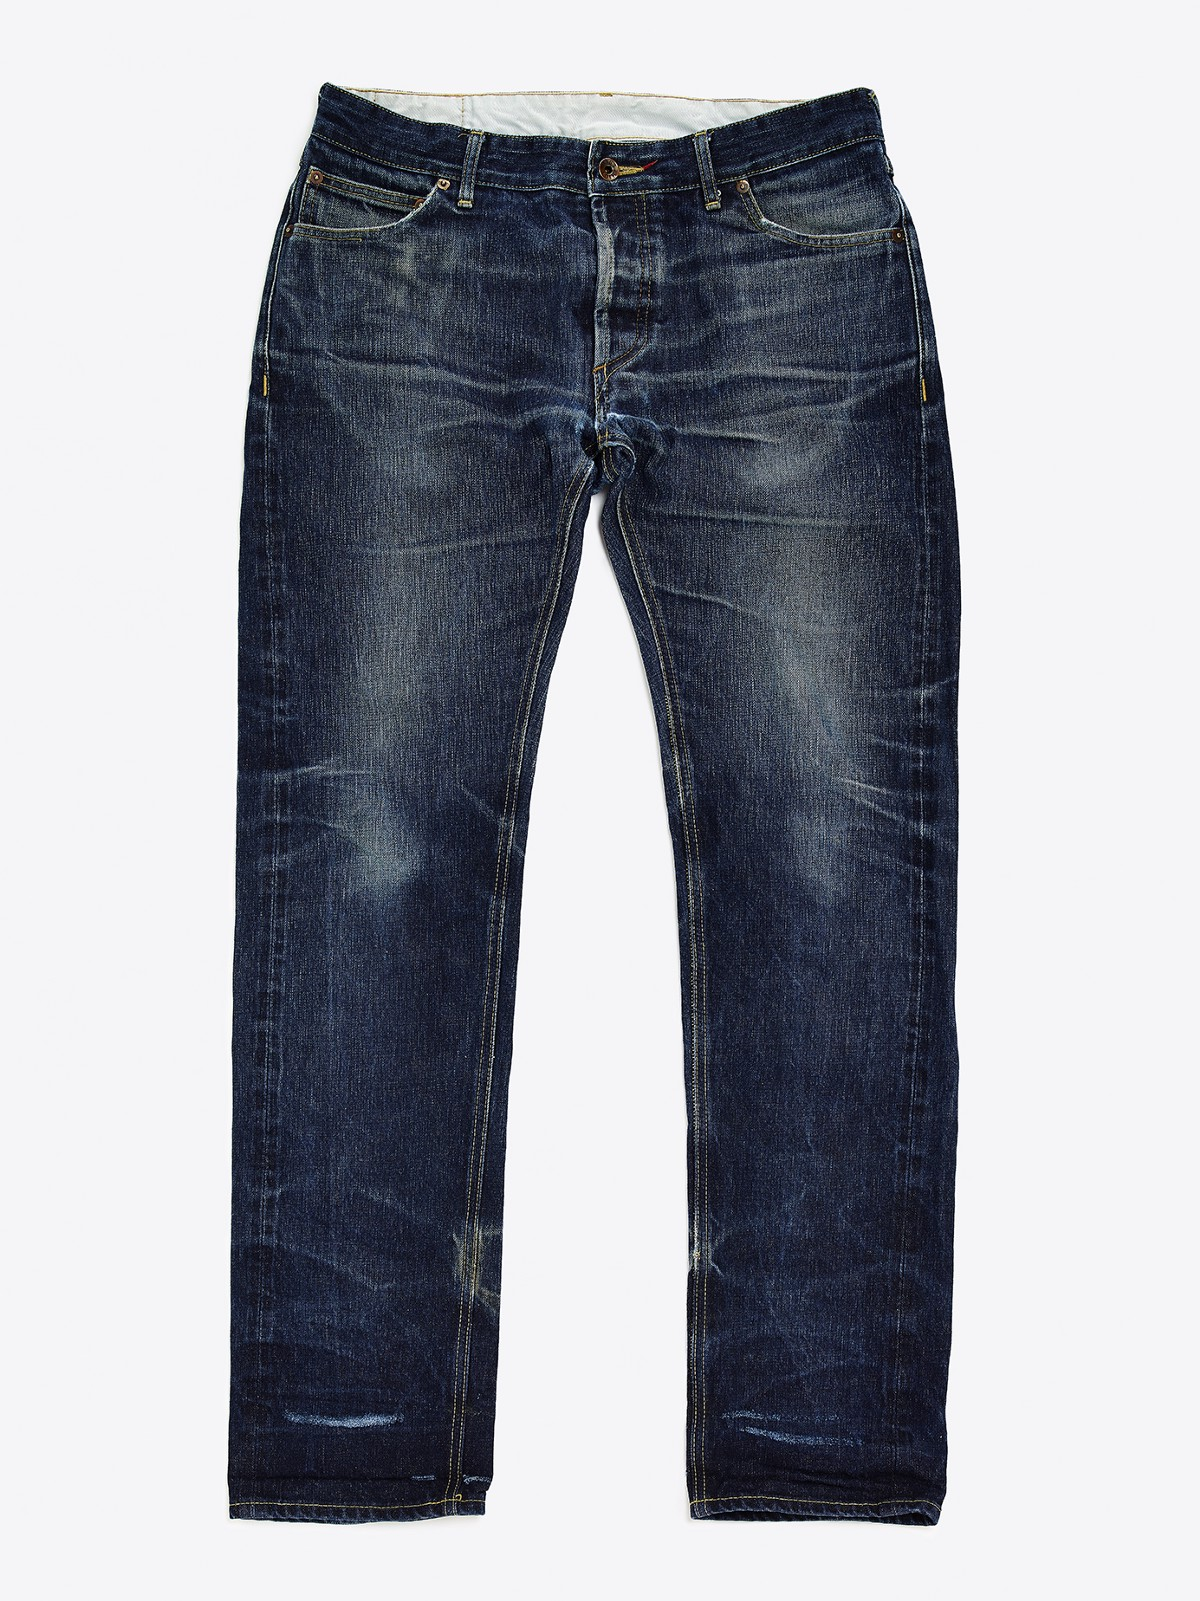 8de07c66 How to wash a pair of selvedge jeans? – A Small Giant – Medium